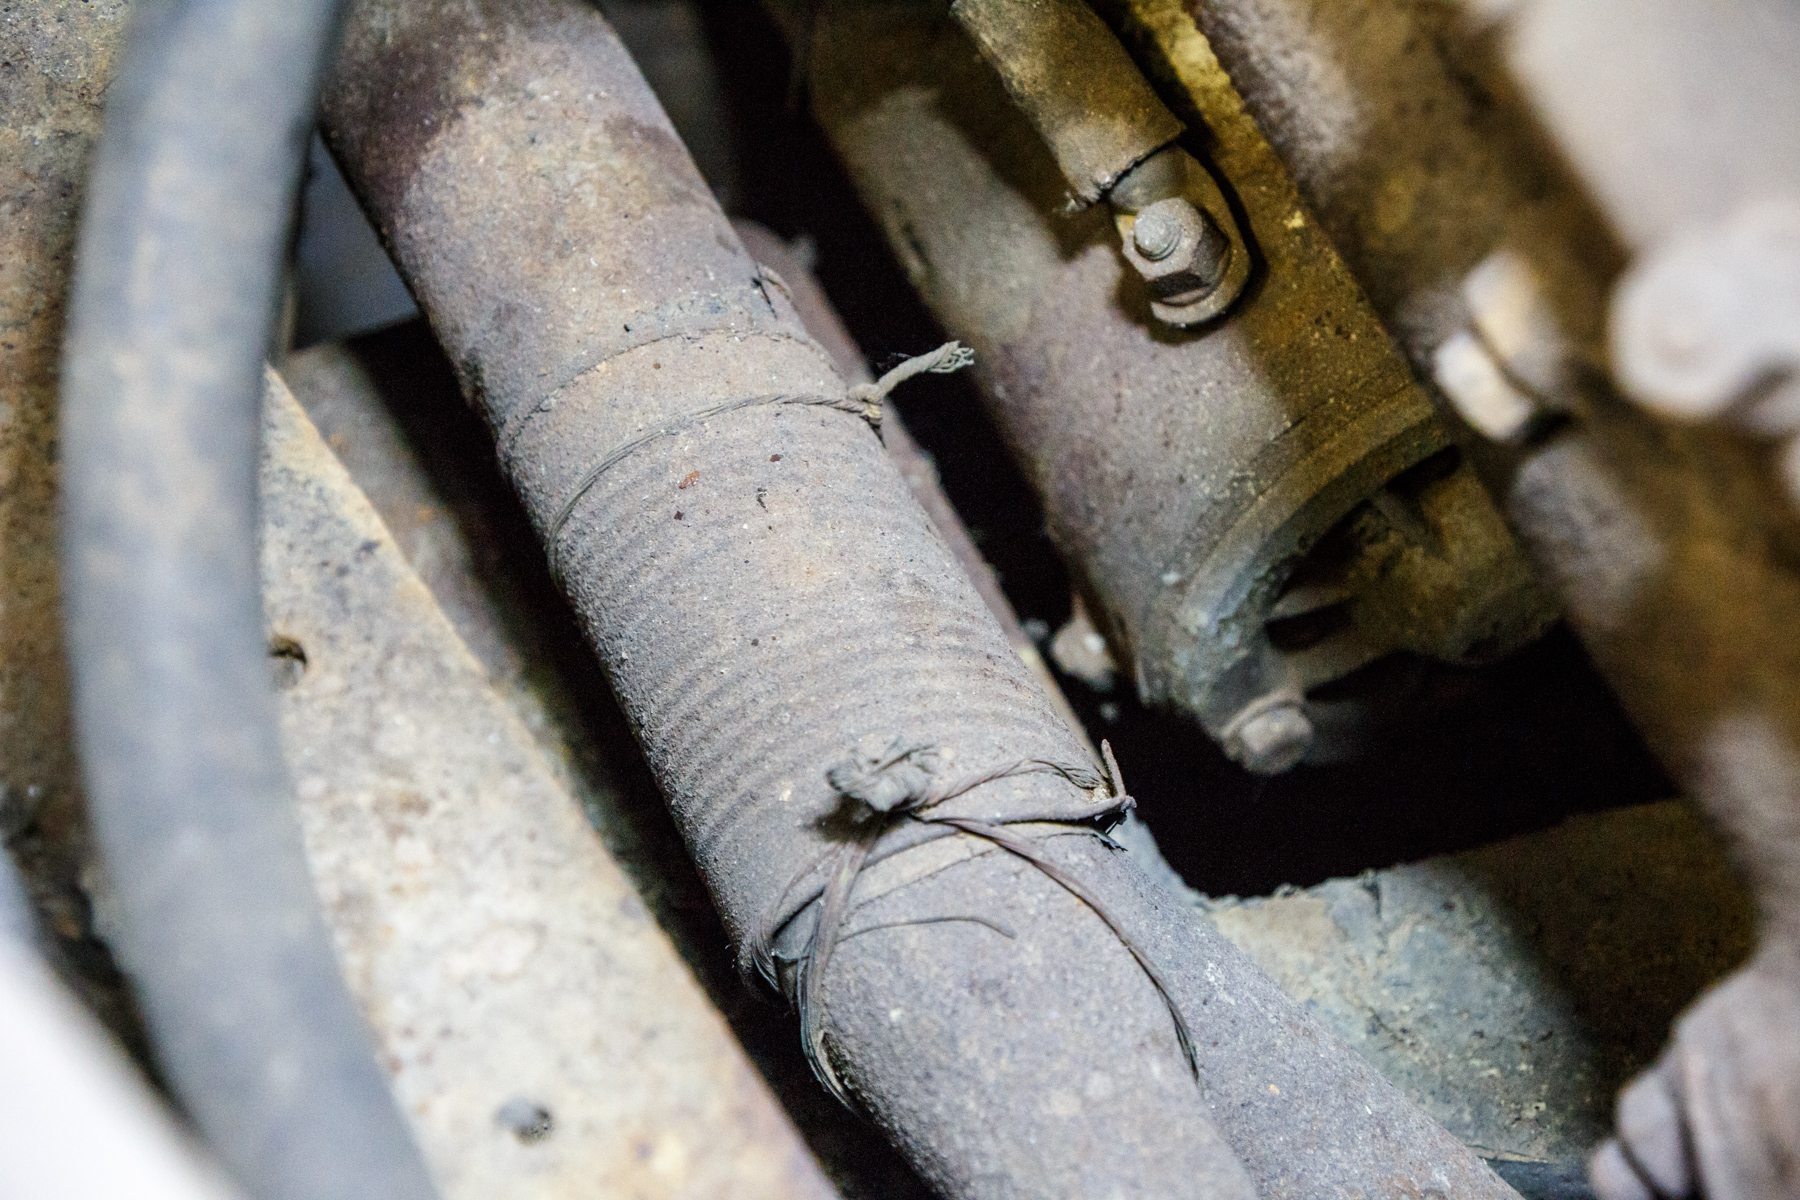 Tin can exhaust repair